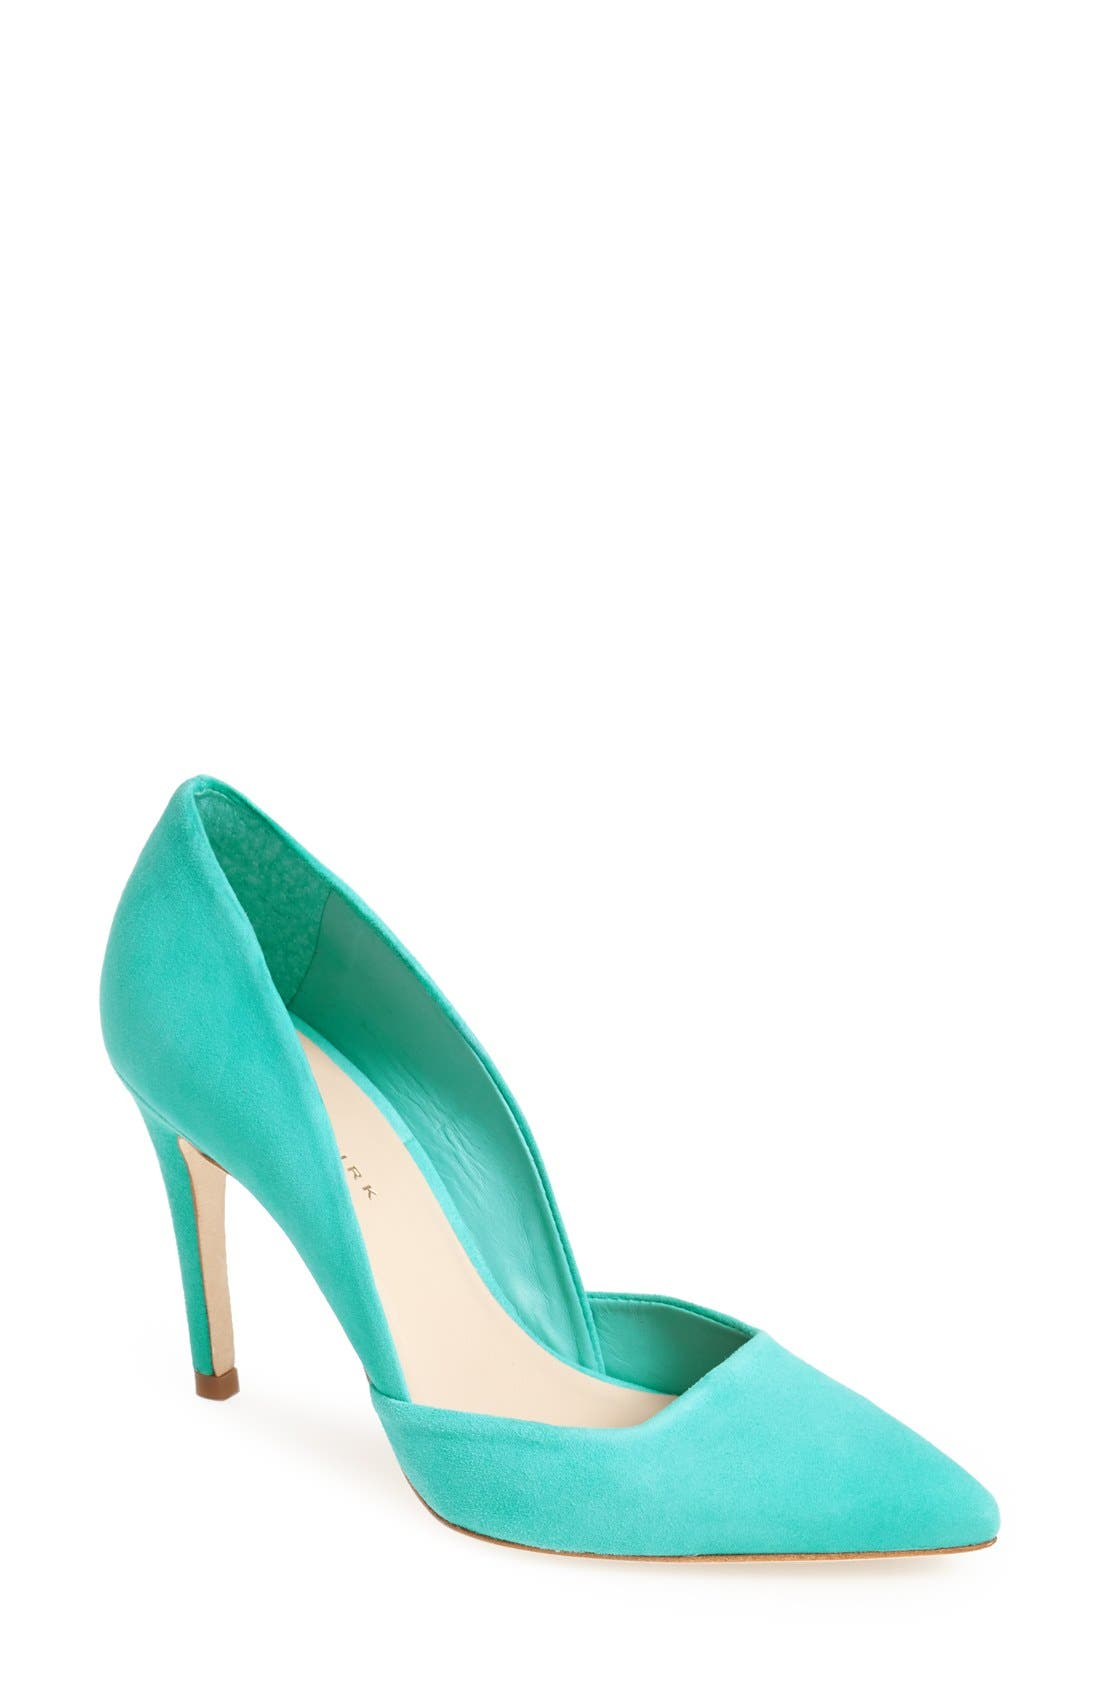 Alternate Image 1 Selected - Trina Turk 'Hollywood' Pump (Women)